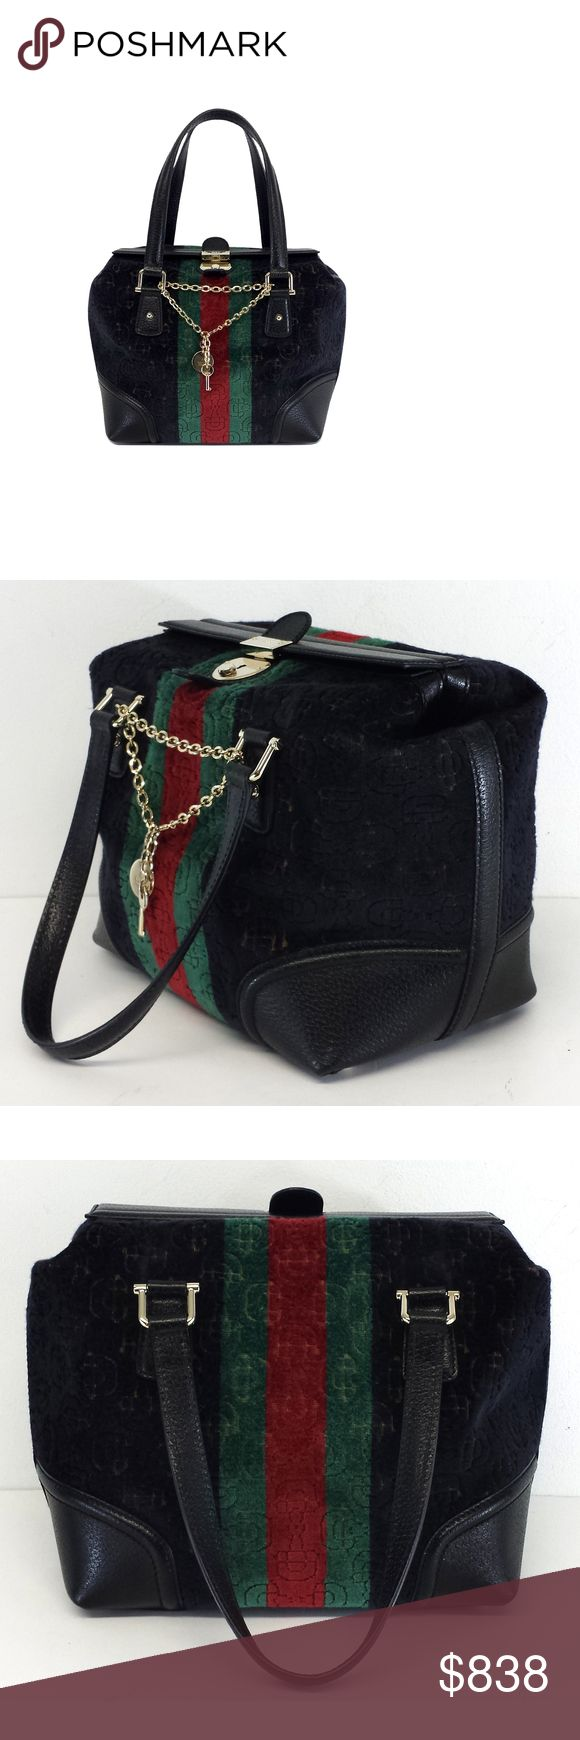 """Gucci- Treasure Small Boston Handbag Treasure Small Boston Handbag Black w/green & red stripes Horsebit embossed velvet Genuine leather Gold-tone hardware Metal studs across bottom Decorative chain w/key & engraved coin Comes w/original dust bag & extra key Made in Italy Flap over & push clasp close 1 inner zip pocket Double handles Width 8.5"""" Height 10"""" Depth 6.25"""" Handle drop 7"""" Gucci is an Italian brand specializing in high-end fashion and leather goods. Gucci offers classic, timeless…"""